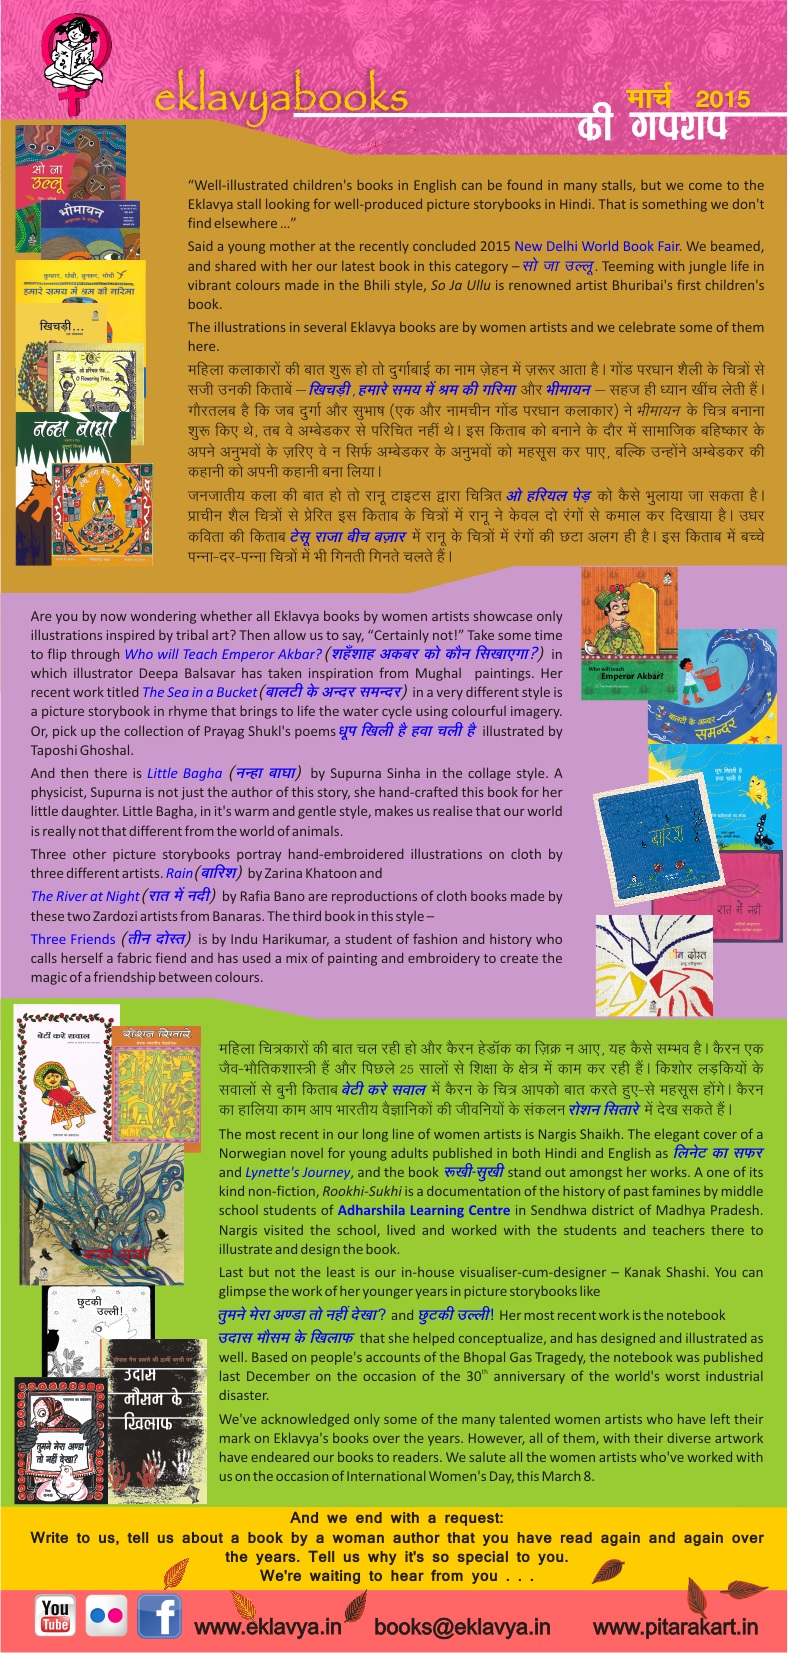 eklavyabooks ki gupshup - March 2015. Enable image for viewing newsletter